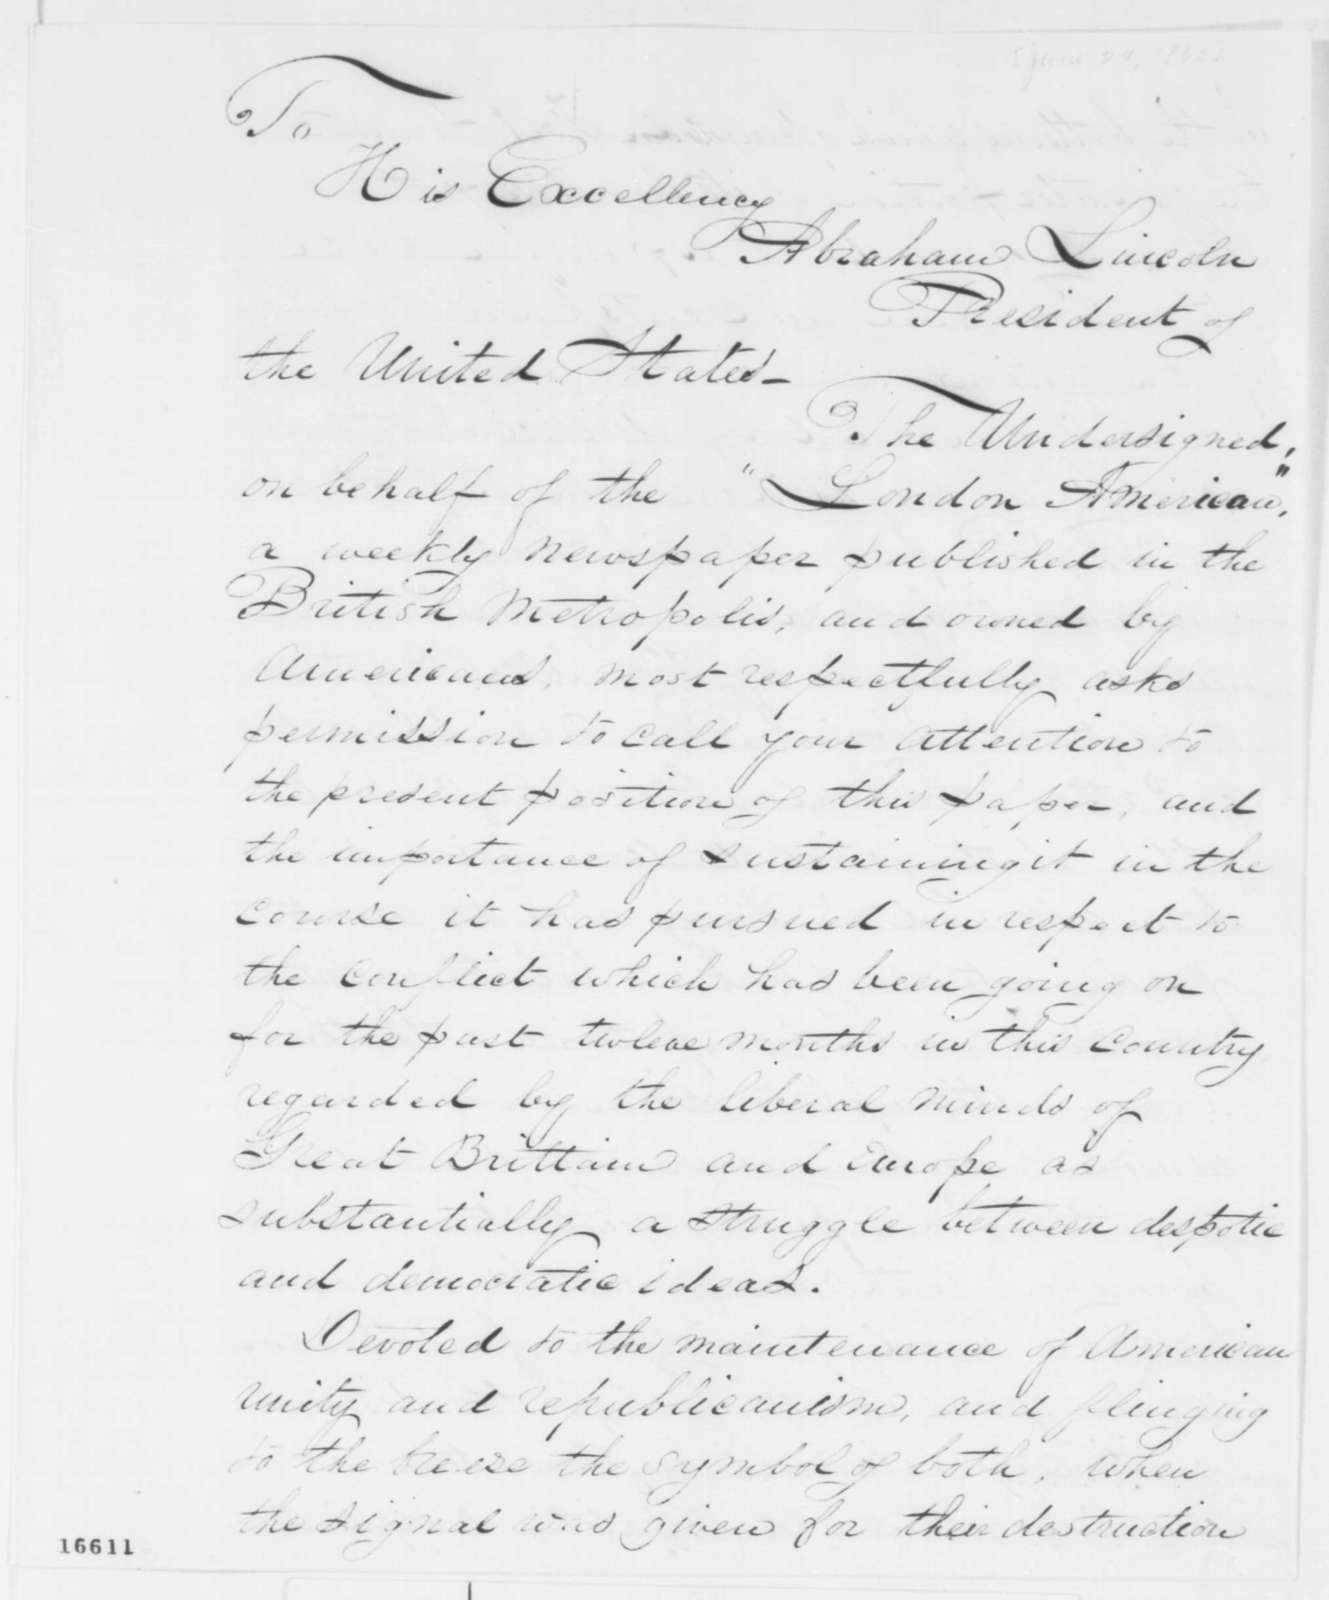 John A. Knight to Abraham Lincoln, Tuesday, June 24, 1862  (Seeks assistance for his newspaper)